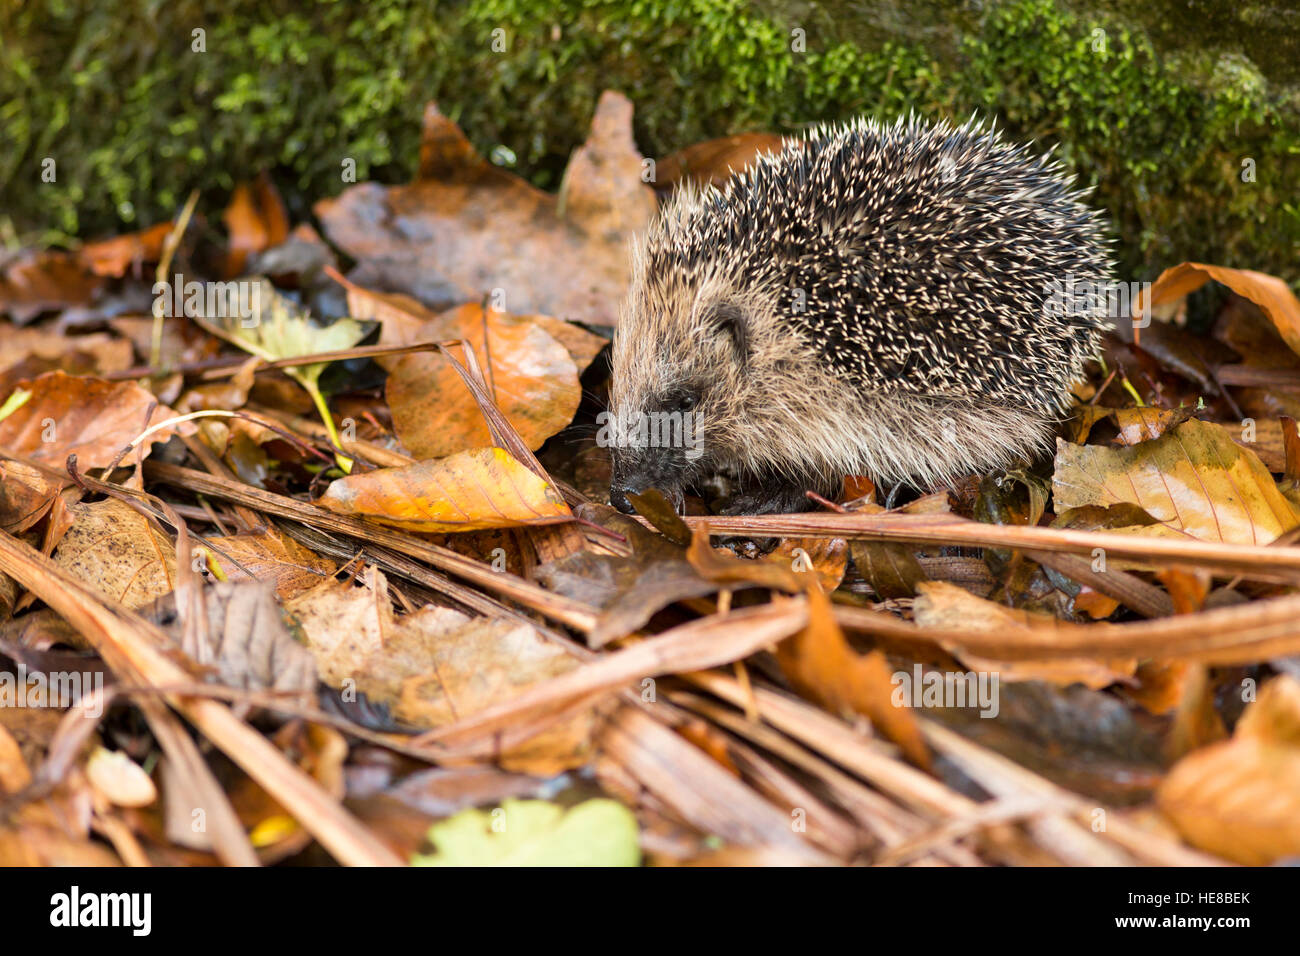 european hedgehog in autumn leaves stockfotos european hedgehog in autumn leaves bilder alamy. Black Bedroom Furniture Sets. Home Design Ideas